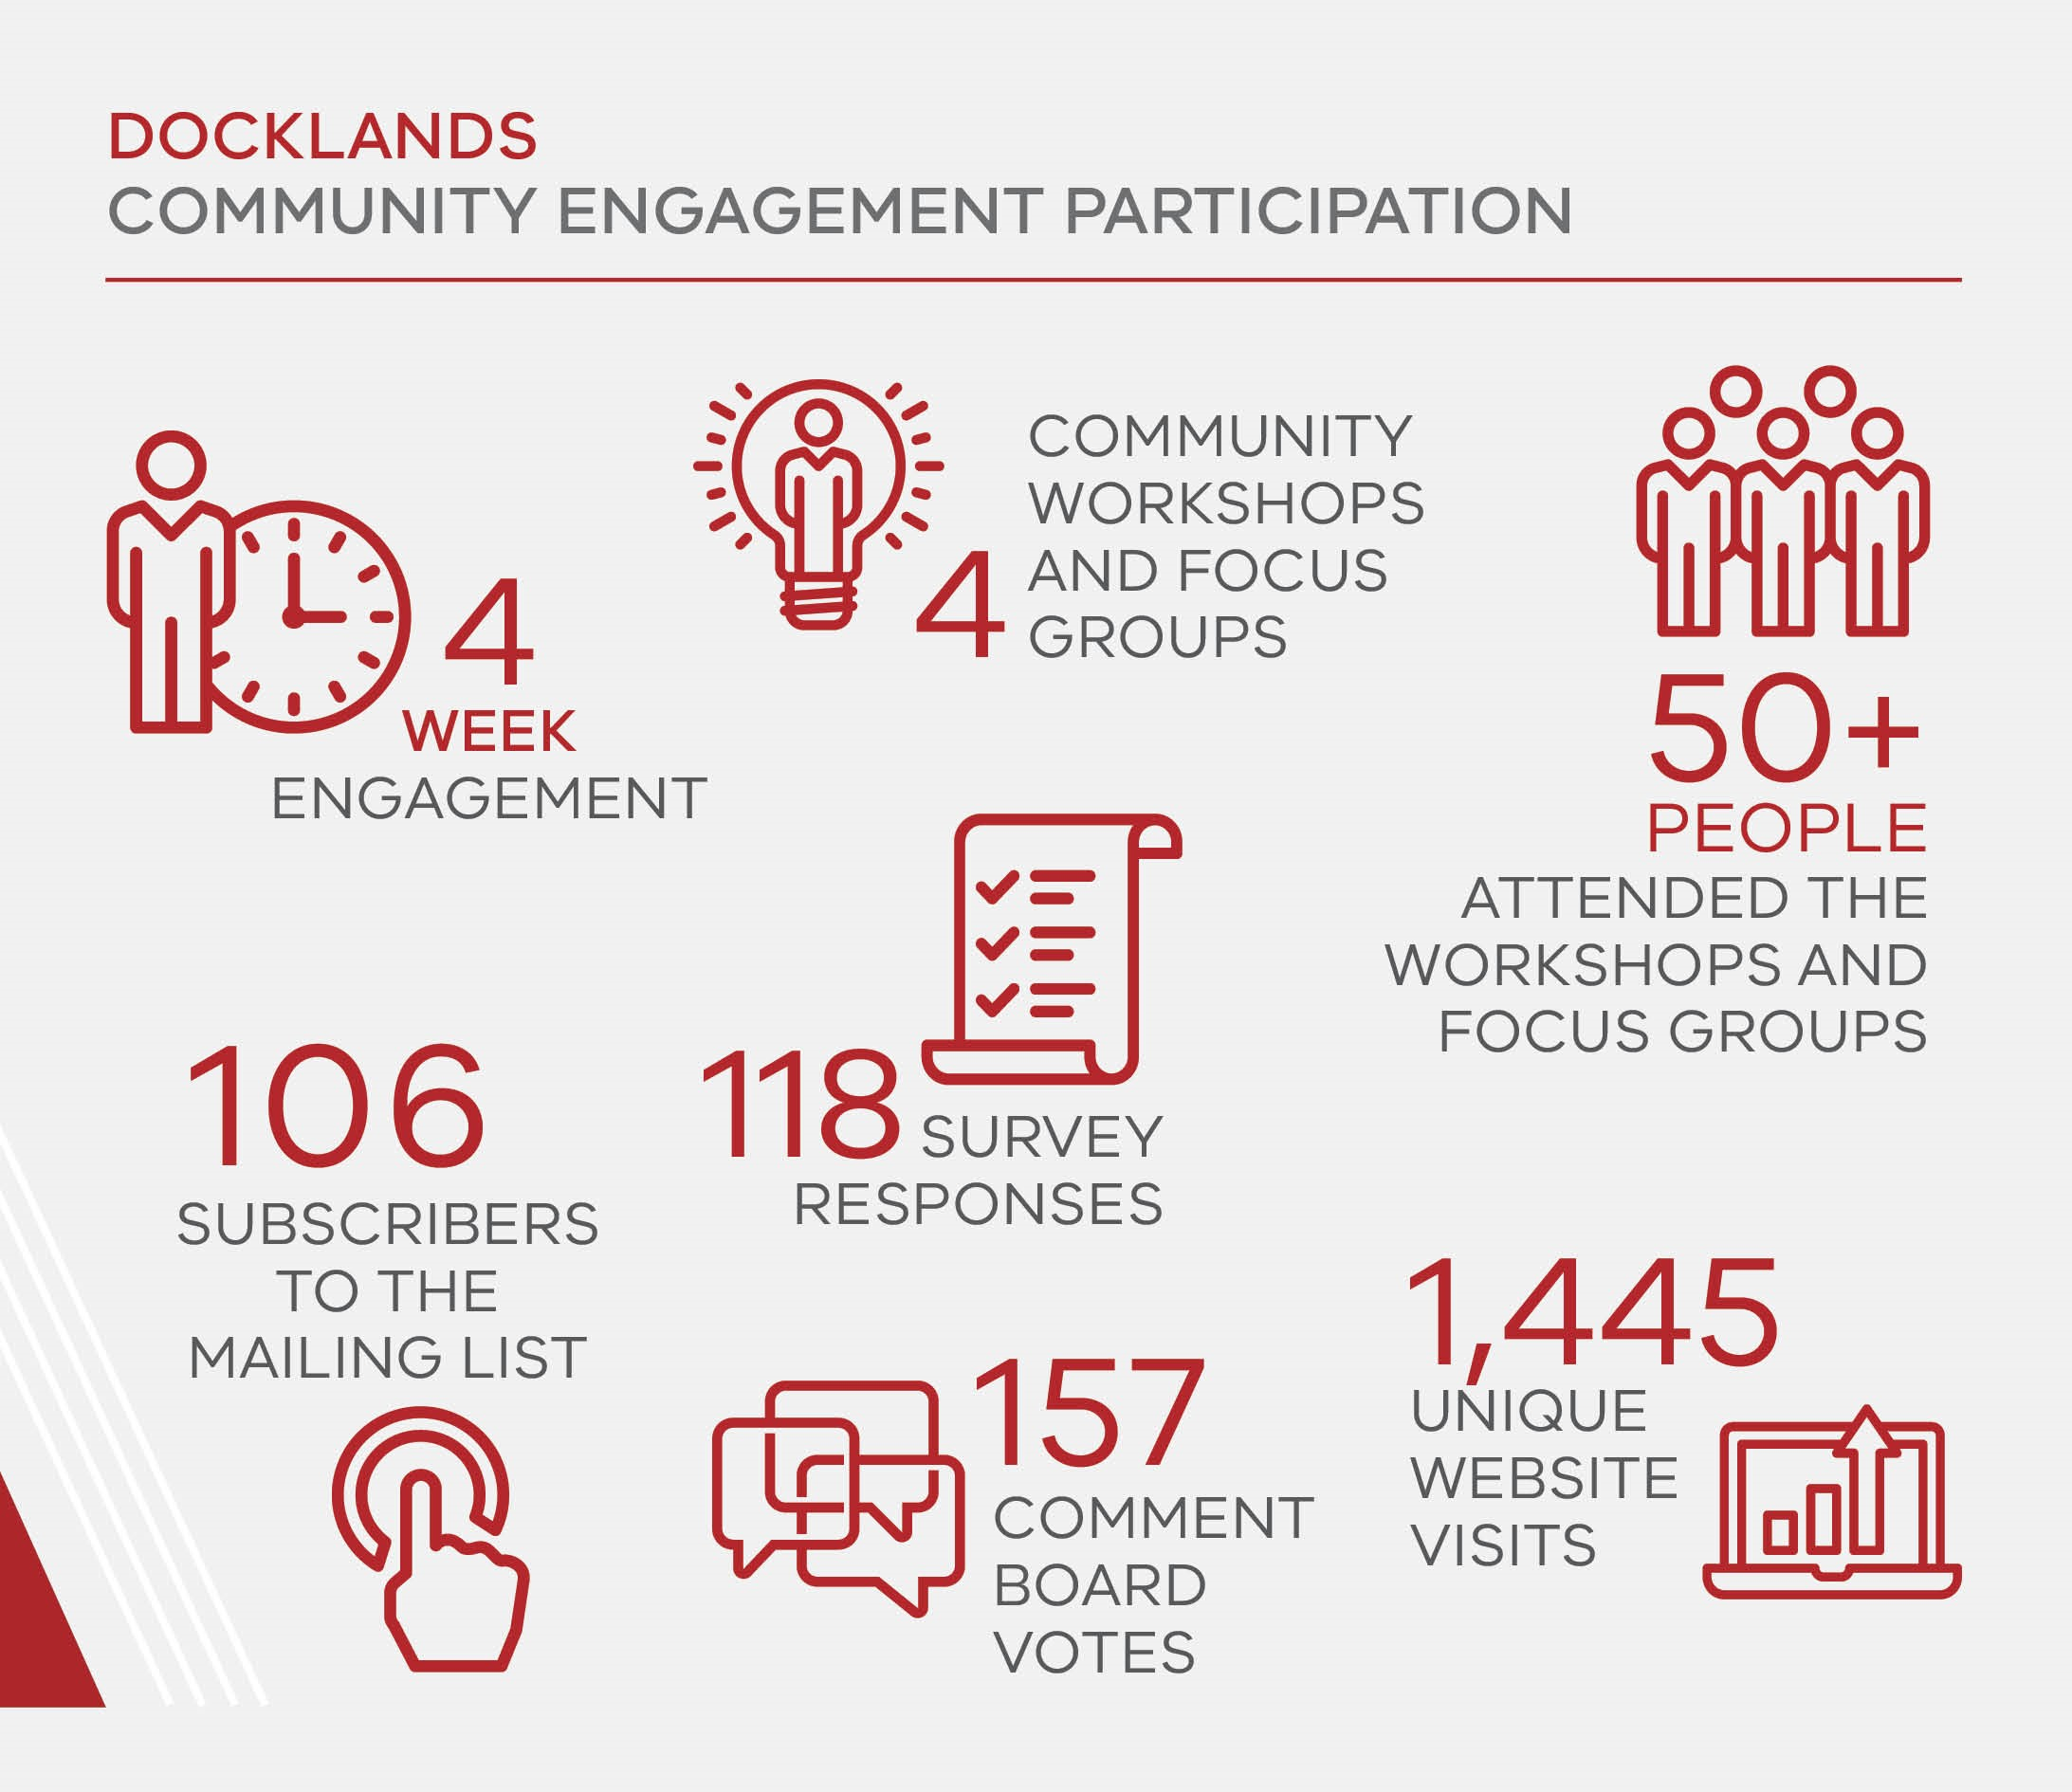 Docklands Primary School post engagement infographic